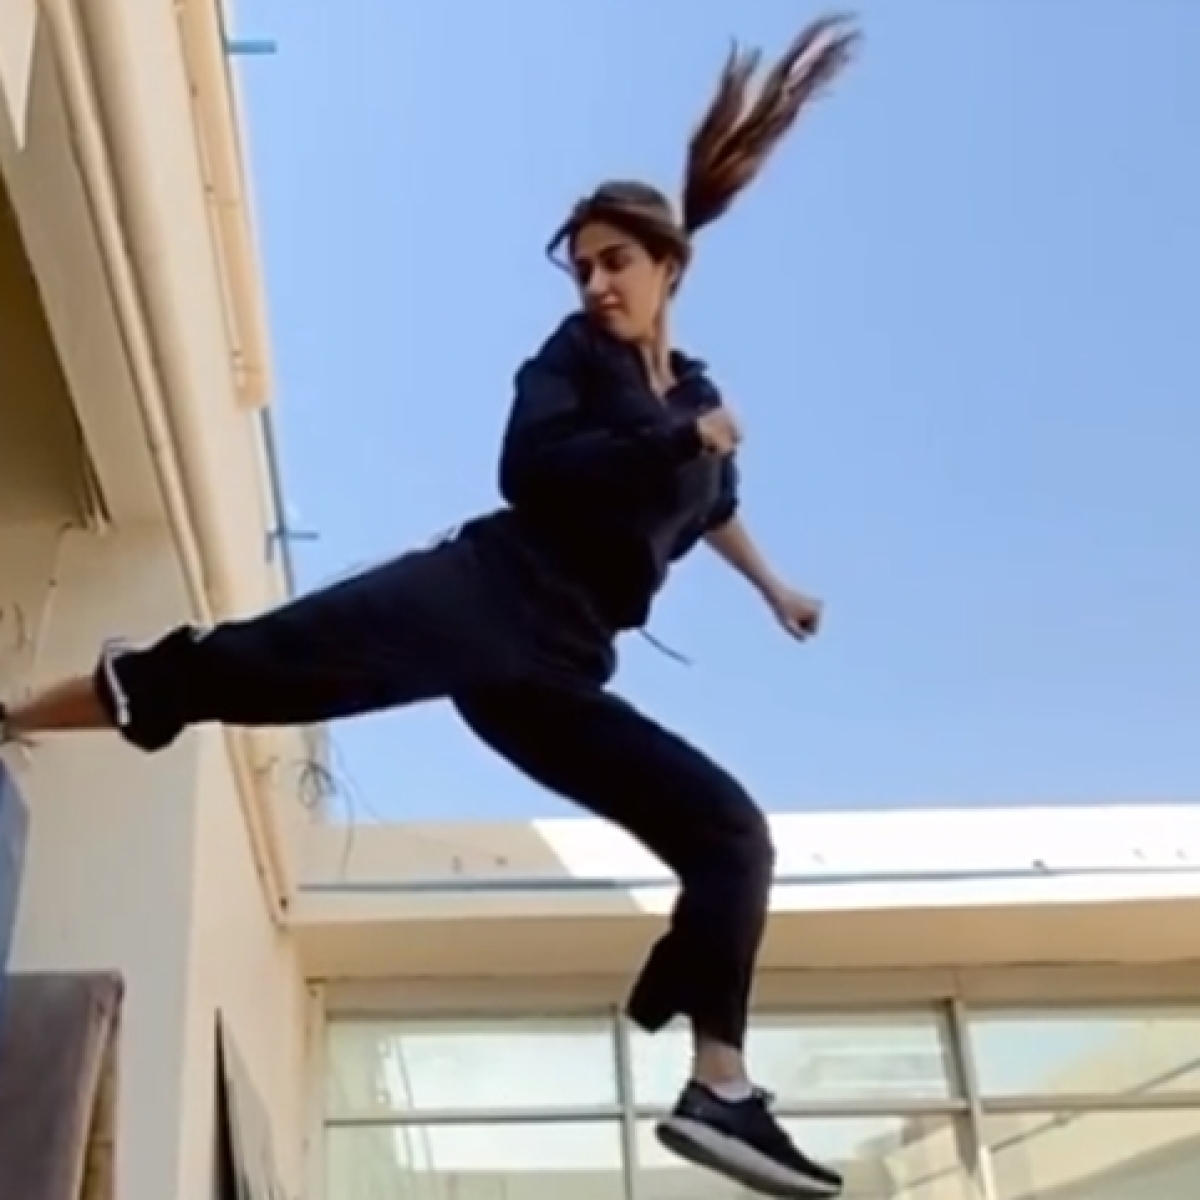 Watch: Action diva Disha Patani nails the extremely difficult flying kick in latest video